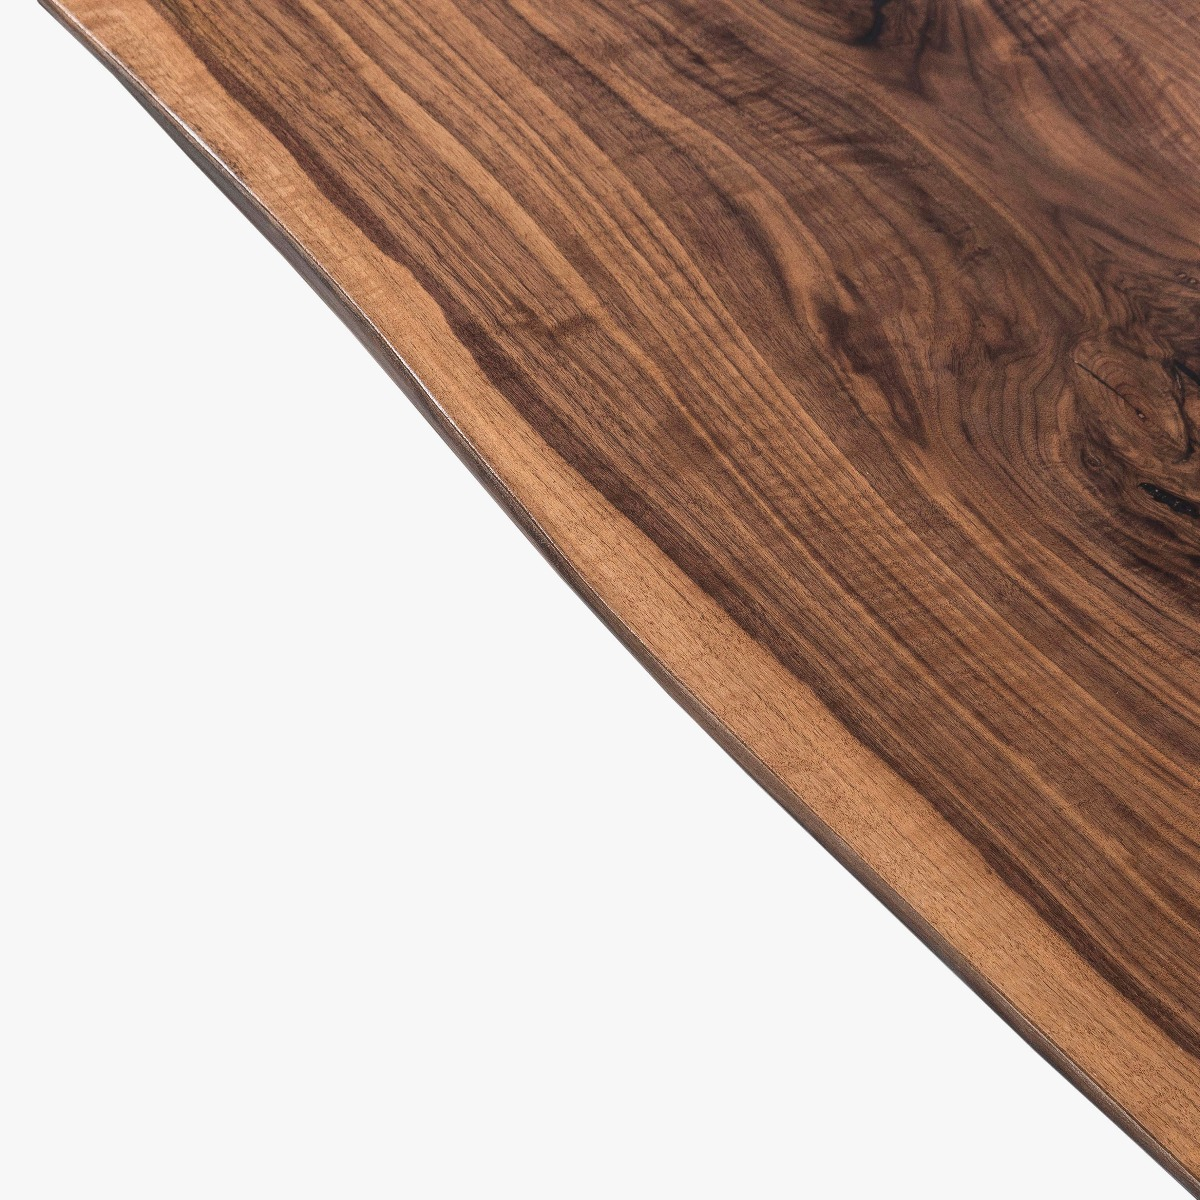 The living edges are retained to celebrate the natural origins and character of the wood.